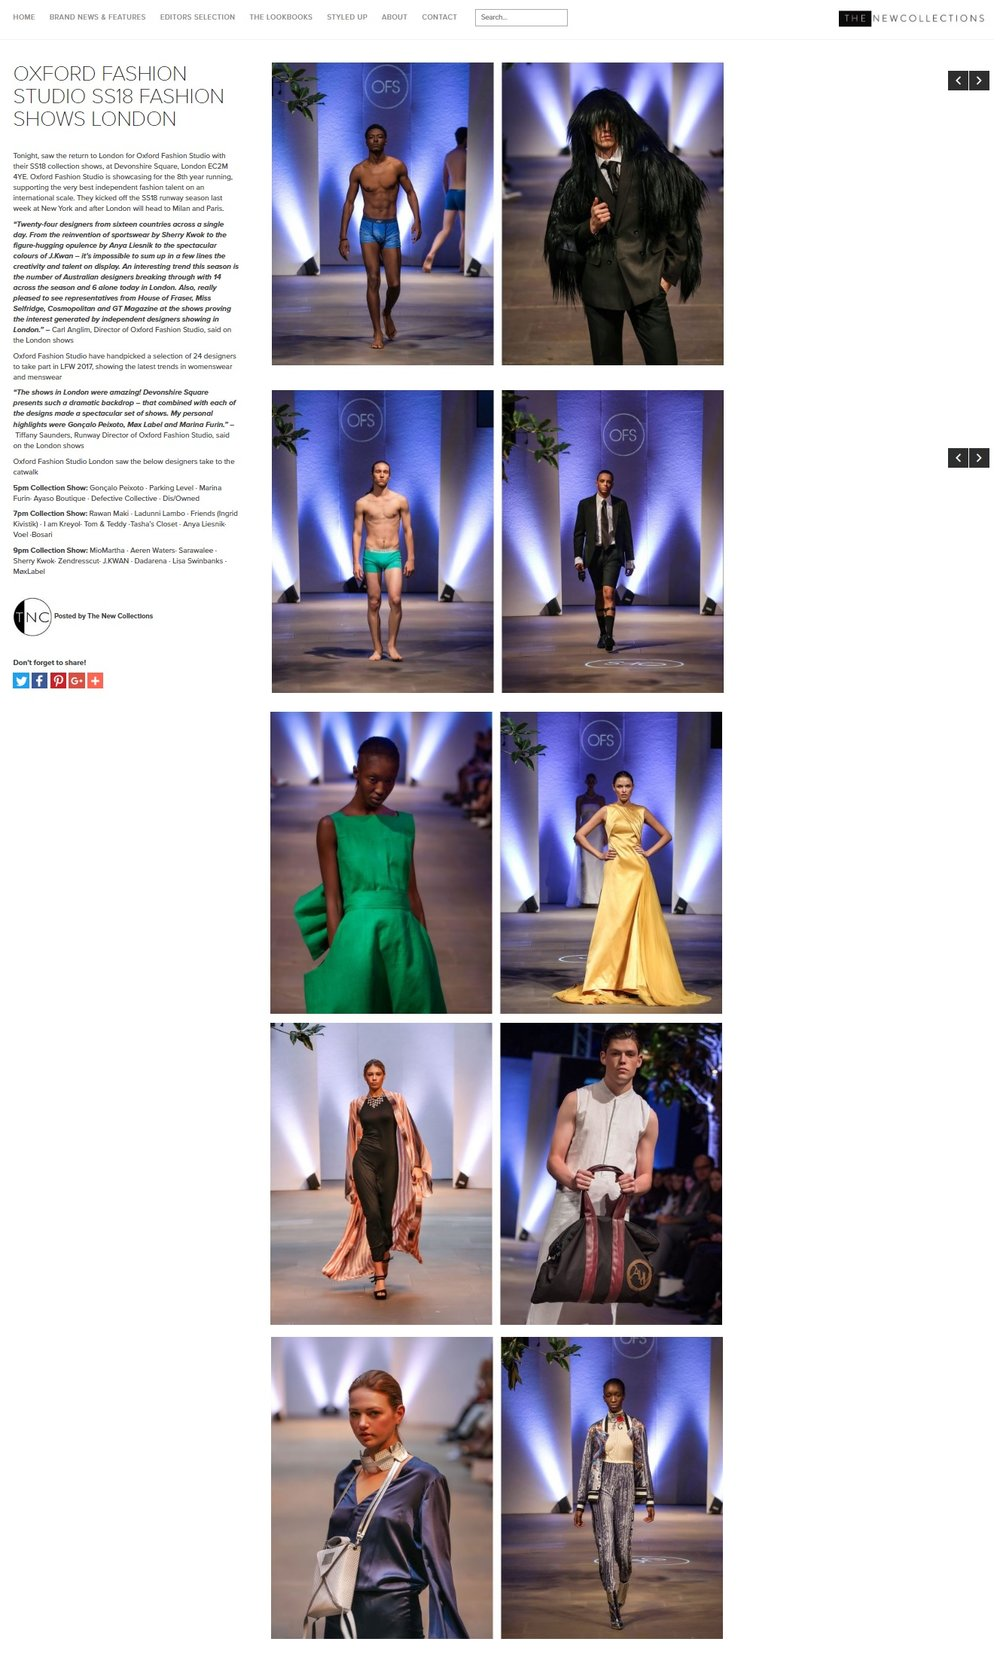 TheNewCollections.co.uk 18th September 2017 - Press 1.jpg